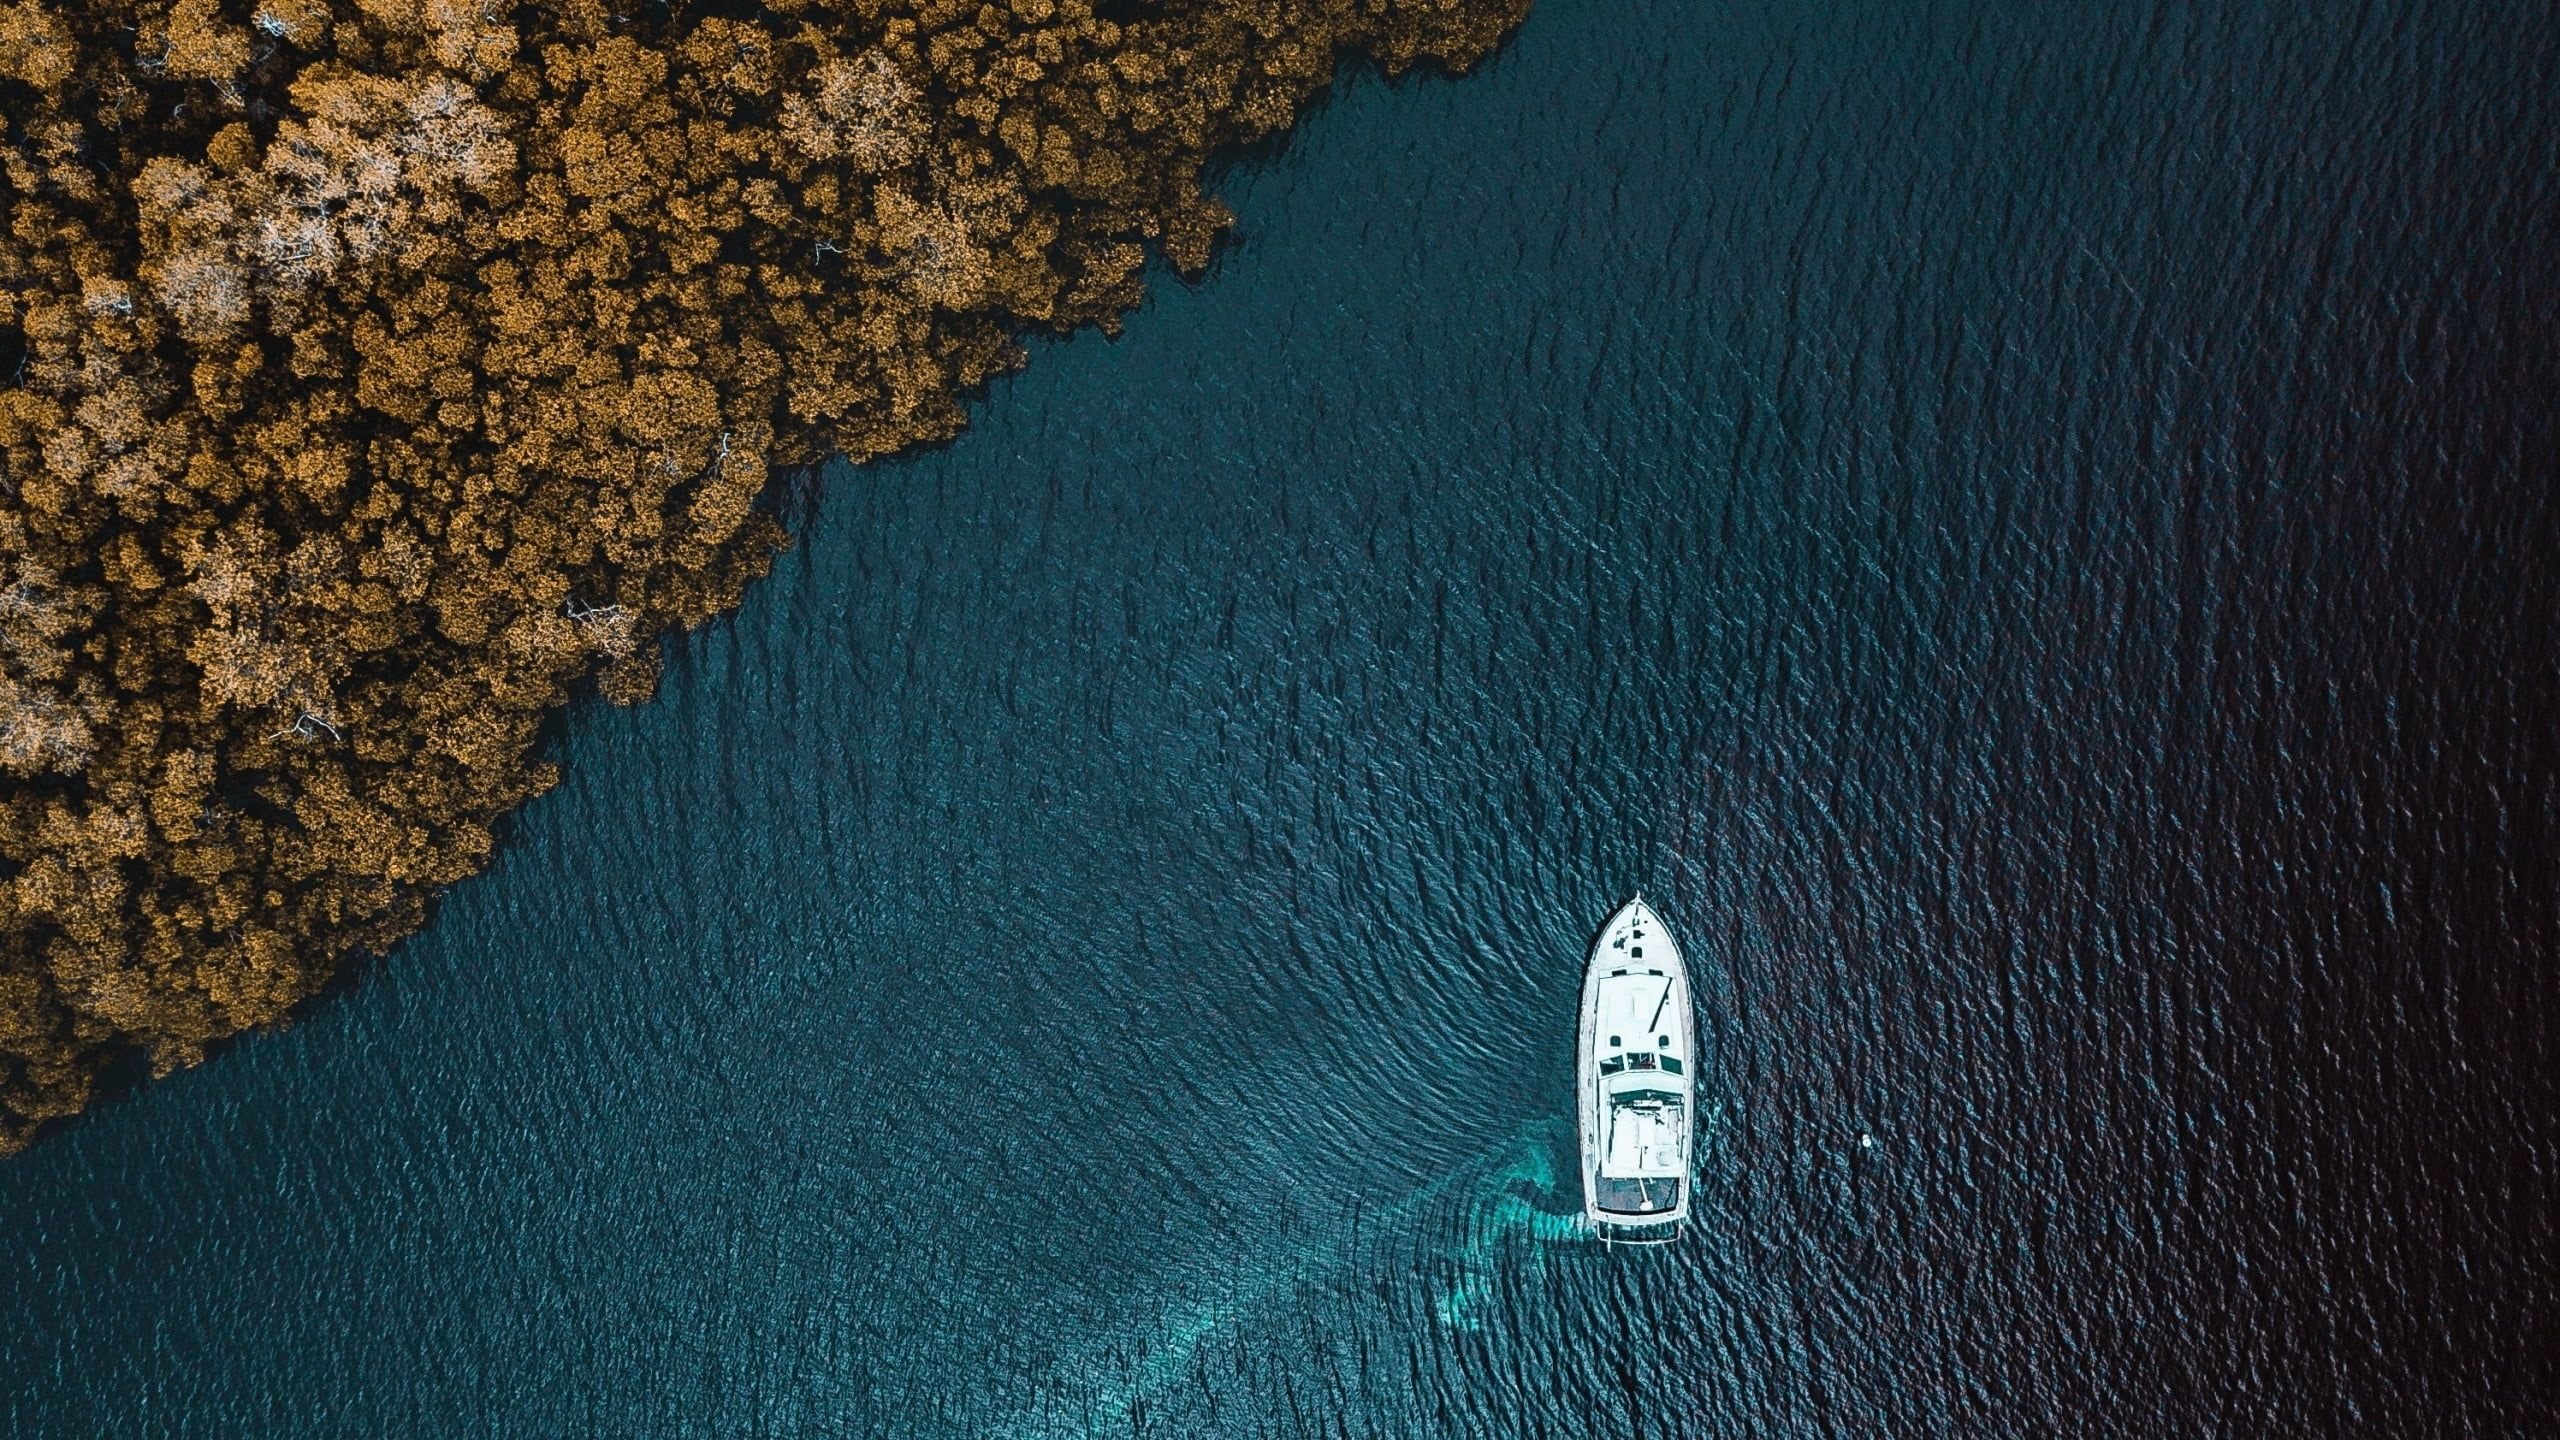 Aerial Sea Boat Vehicle Water Trees Drone Photo Top View Aerial View Forest 2k Wallpaper Hdwallpaper Deskto Hd Wallpaper Drone Photos View Wallpaper Wallpaper coast aerial view sea boat